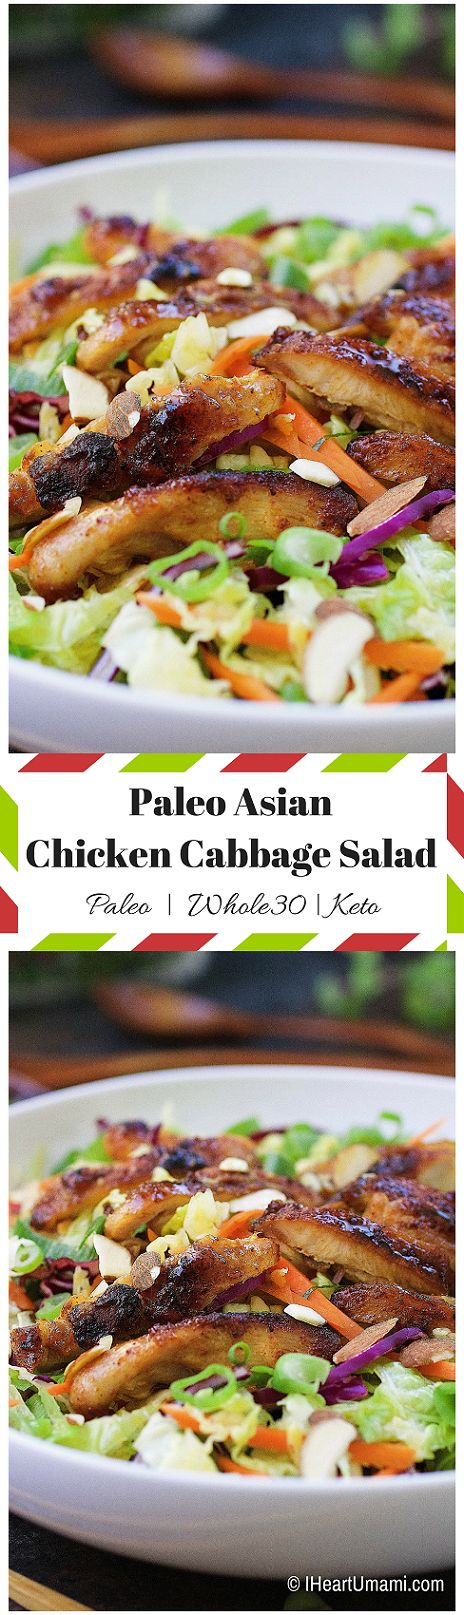 Paleo Asian Chicken Cabbage Salad. Chinese-inspired Asian Chicken Cabbage Salad with sesame vinaigrette dressing. Whole30/Keto friendly. IHeartUmami.com